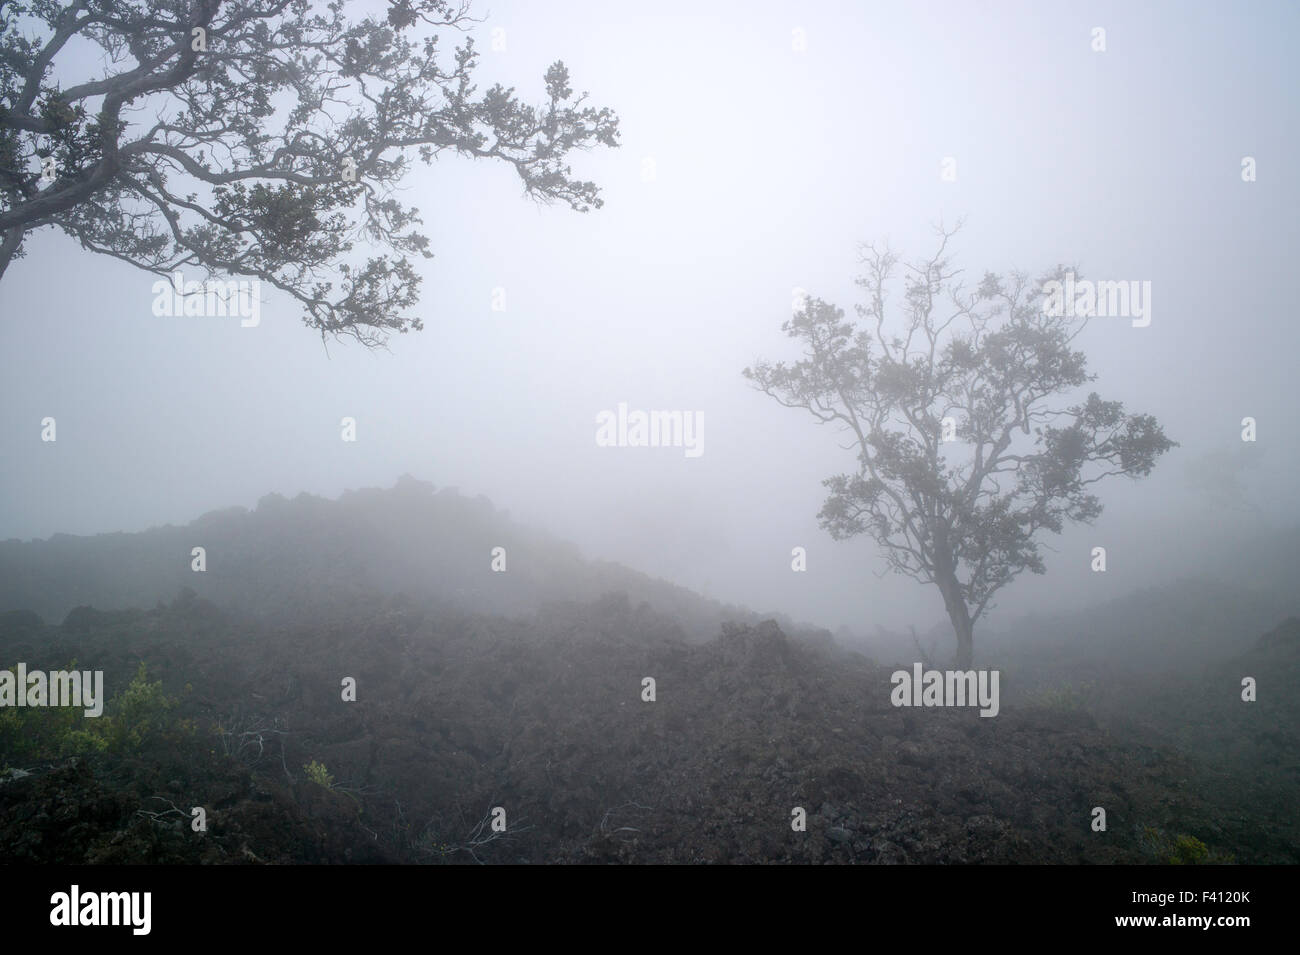 Foggy view of lava rock fields & trees near Mauna Loa Road, Hawai'i Volcanoes National Park, Big Island, - Stock Image